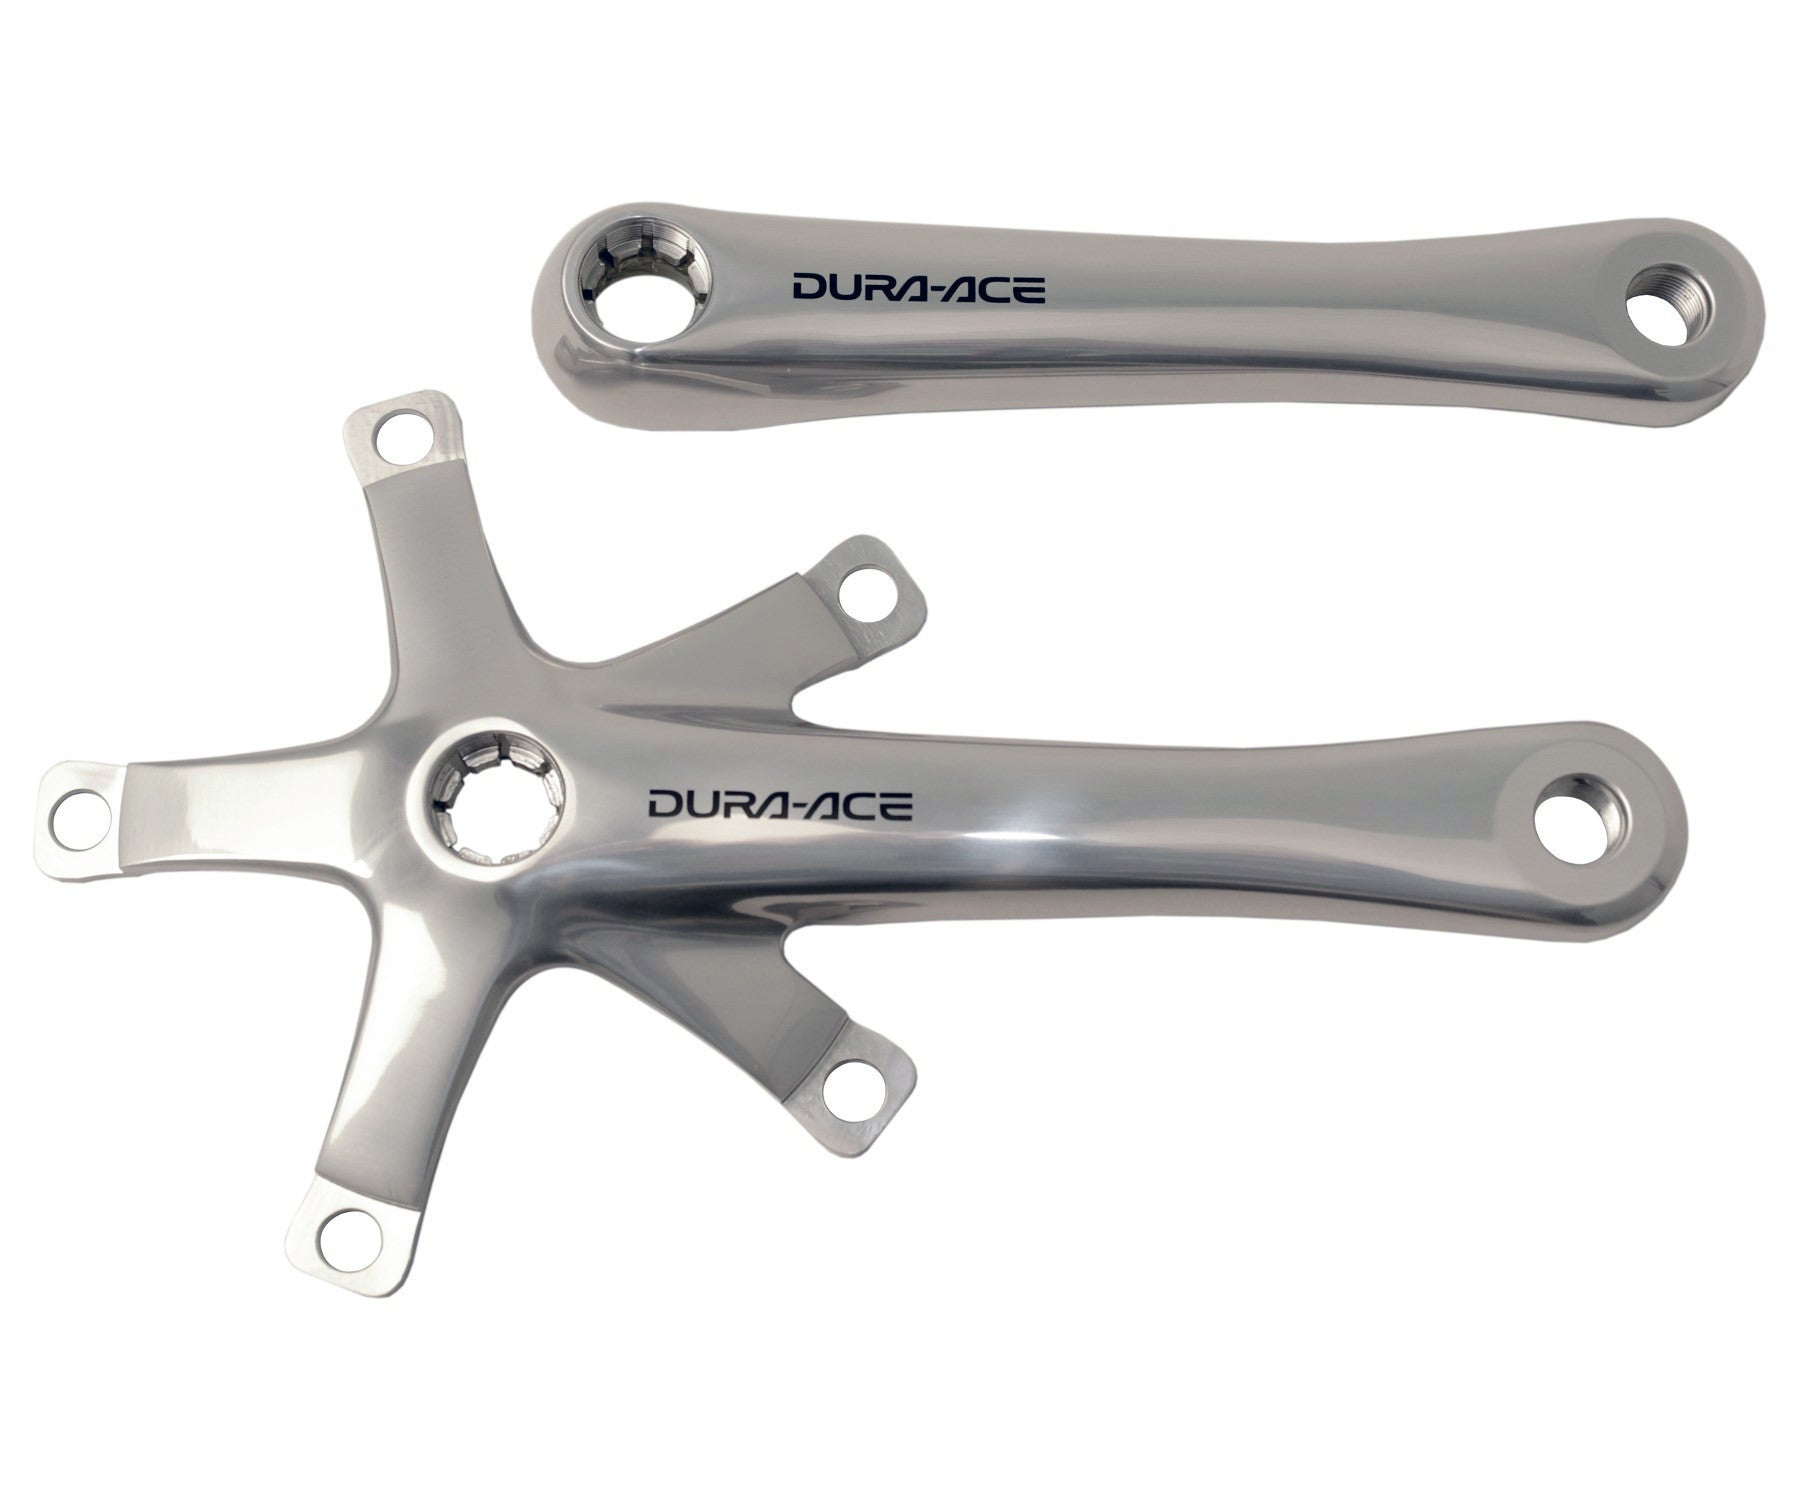 Shimano Dura Ace 7710 NJS track crank arms - Retrogression